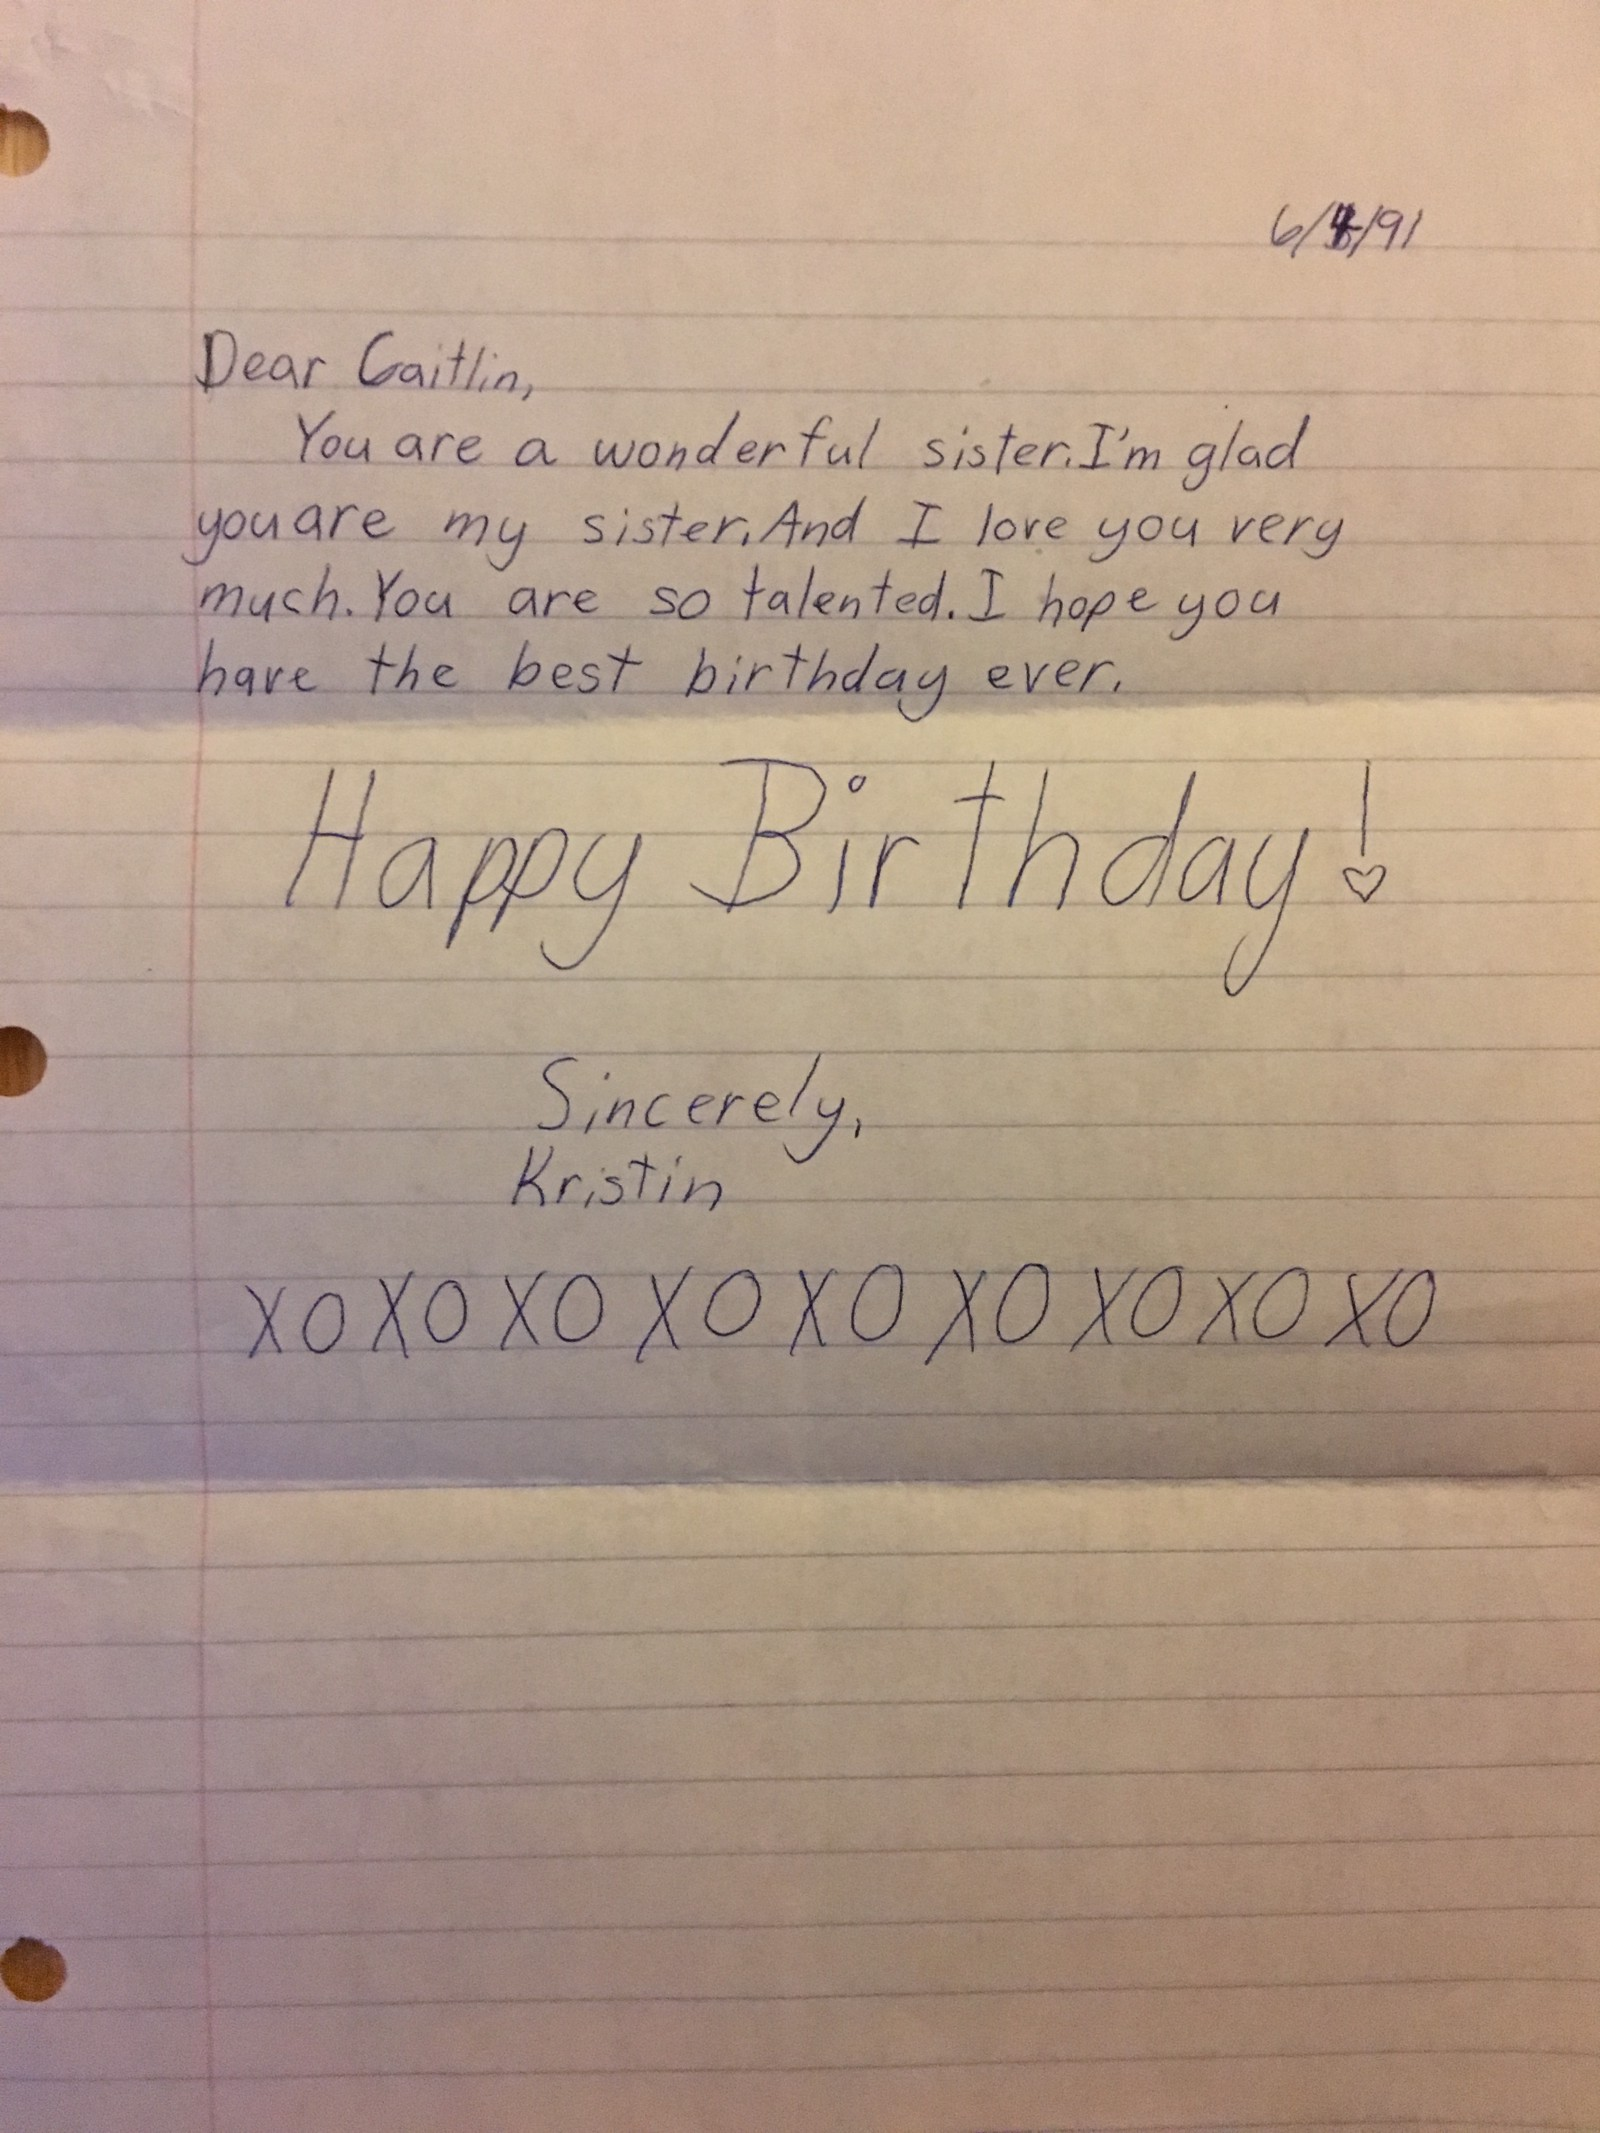 im very fortunate for all the opportunities i had to adopt her behavior case in point best happy birthday to my big sister letter image collection